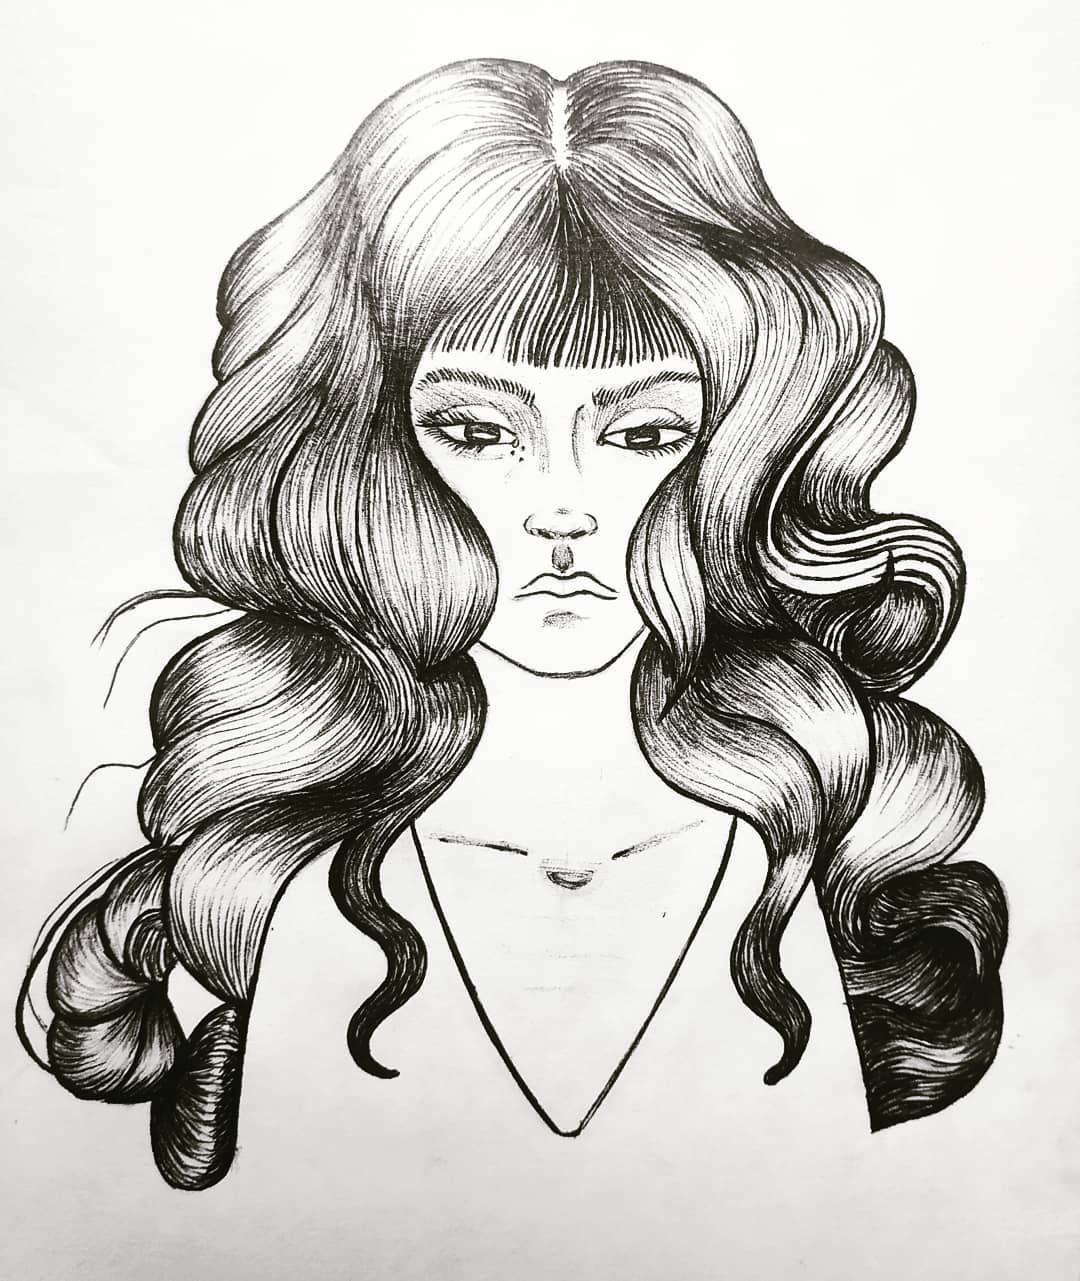 El amor no se mendiga ; . . . .  #sketch  #sketchbook #linework #lineas #tattoo #broken  #ilustracion #illustration #dibujo #arte #art #drawing #artecolombia #black #tattoosketch  #blacksoul #disester #tattoo #girl #hair #mujer #face #woman #love #amor